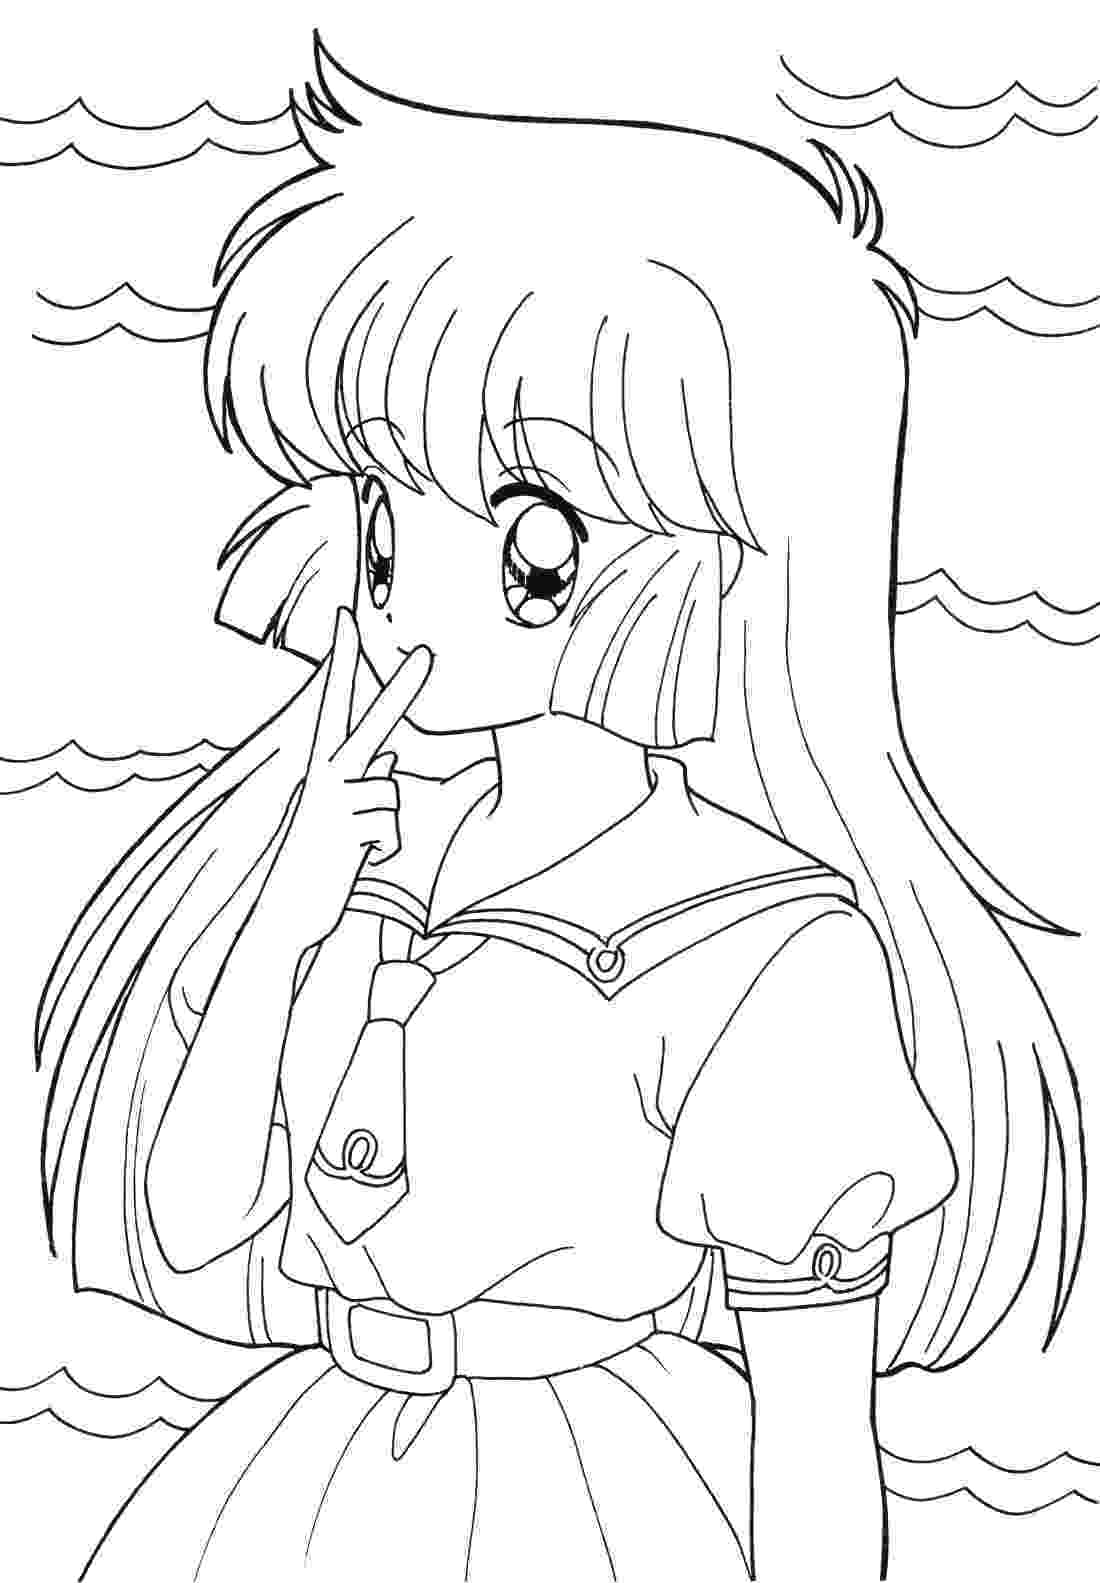 free printable coloring pictures anime coloring pages best coloring pages for kids coloring pictures free printable 1 1